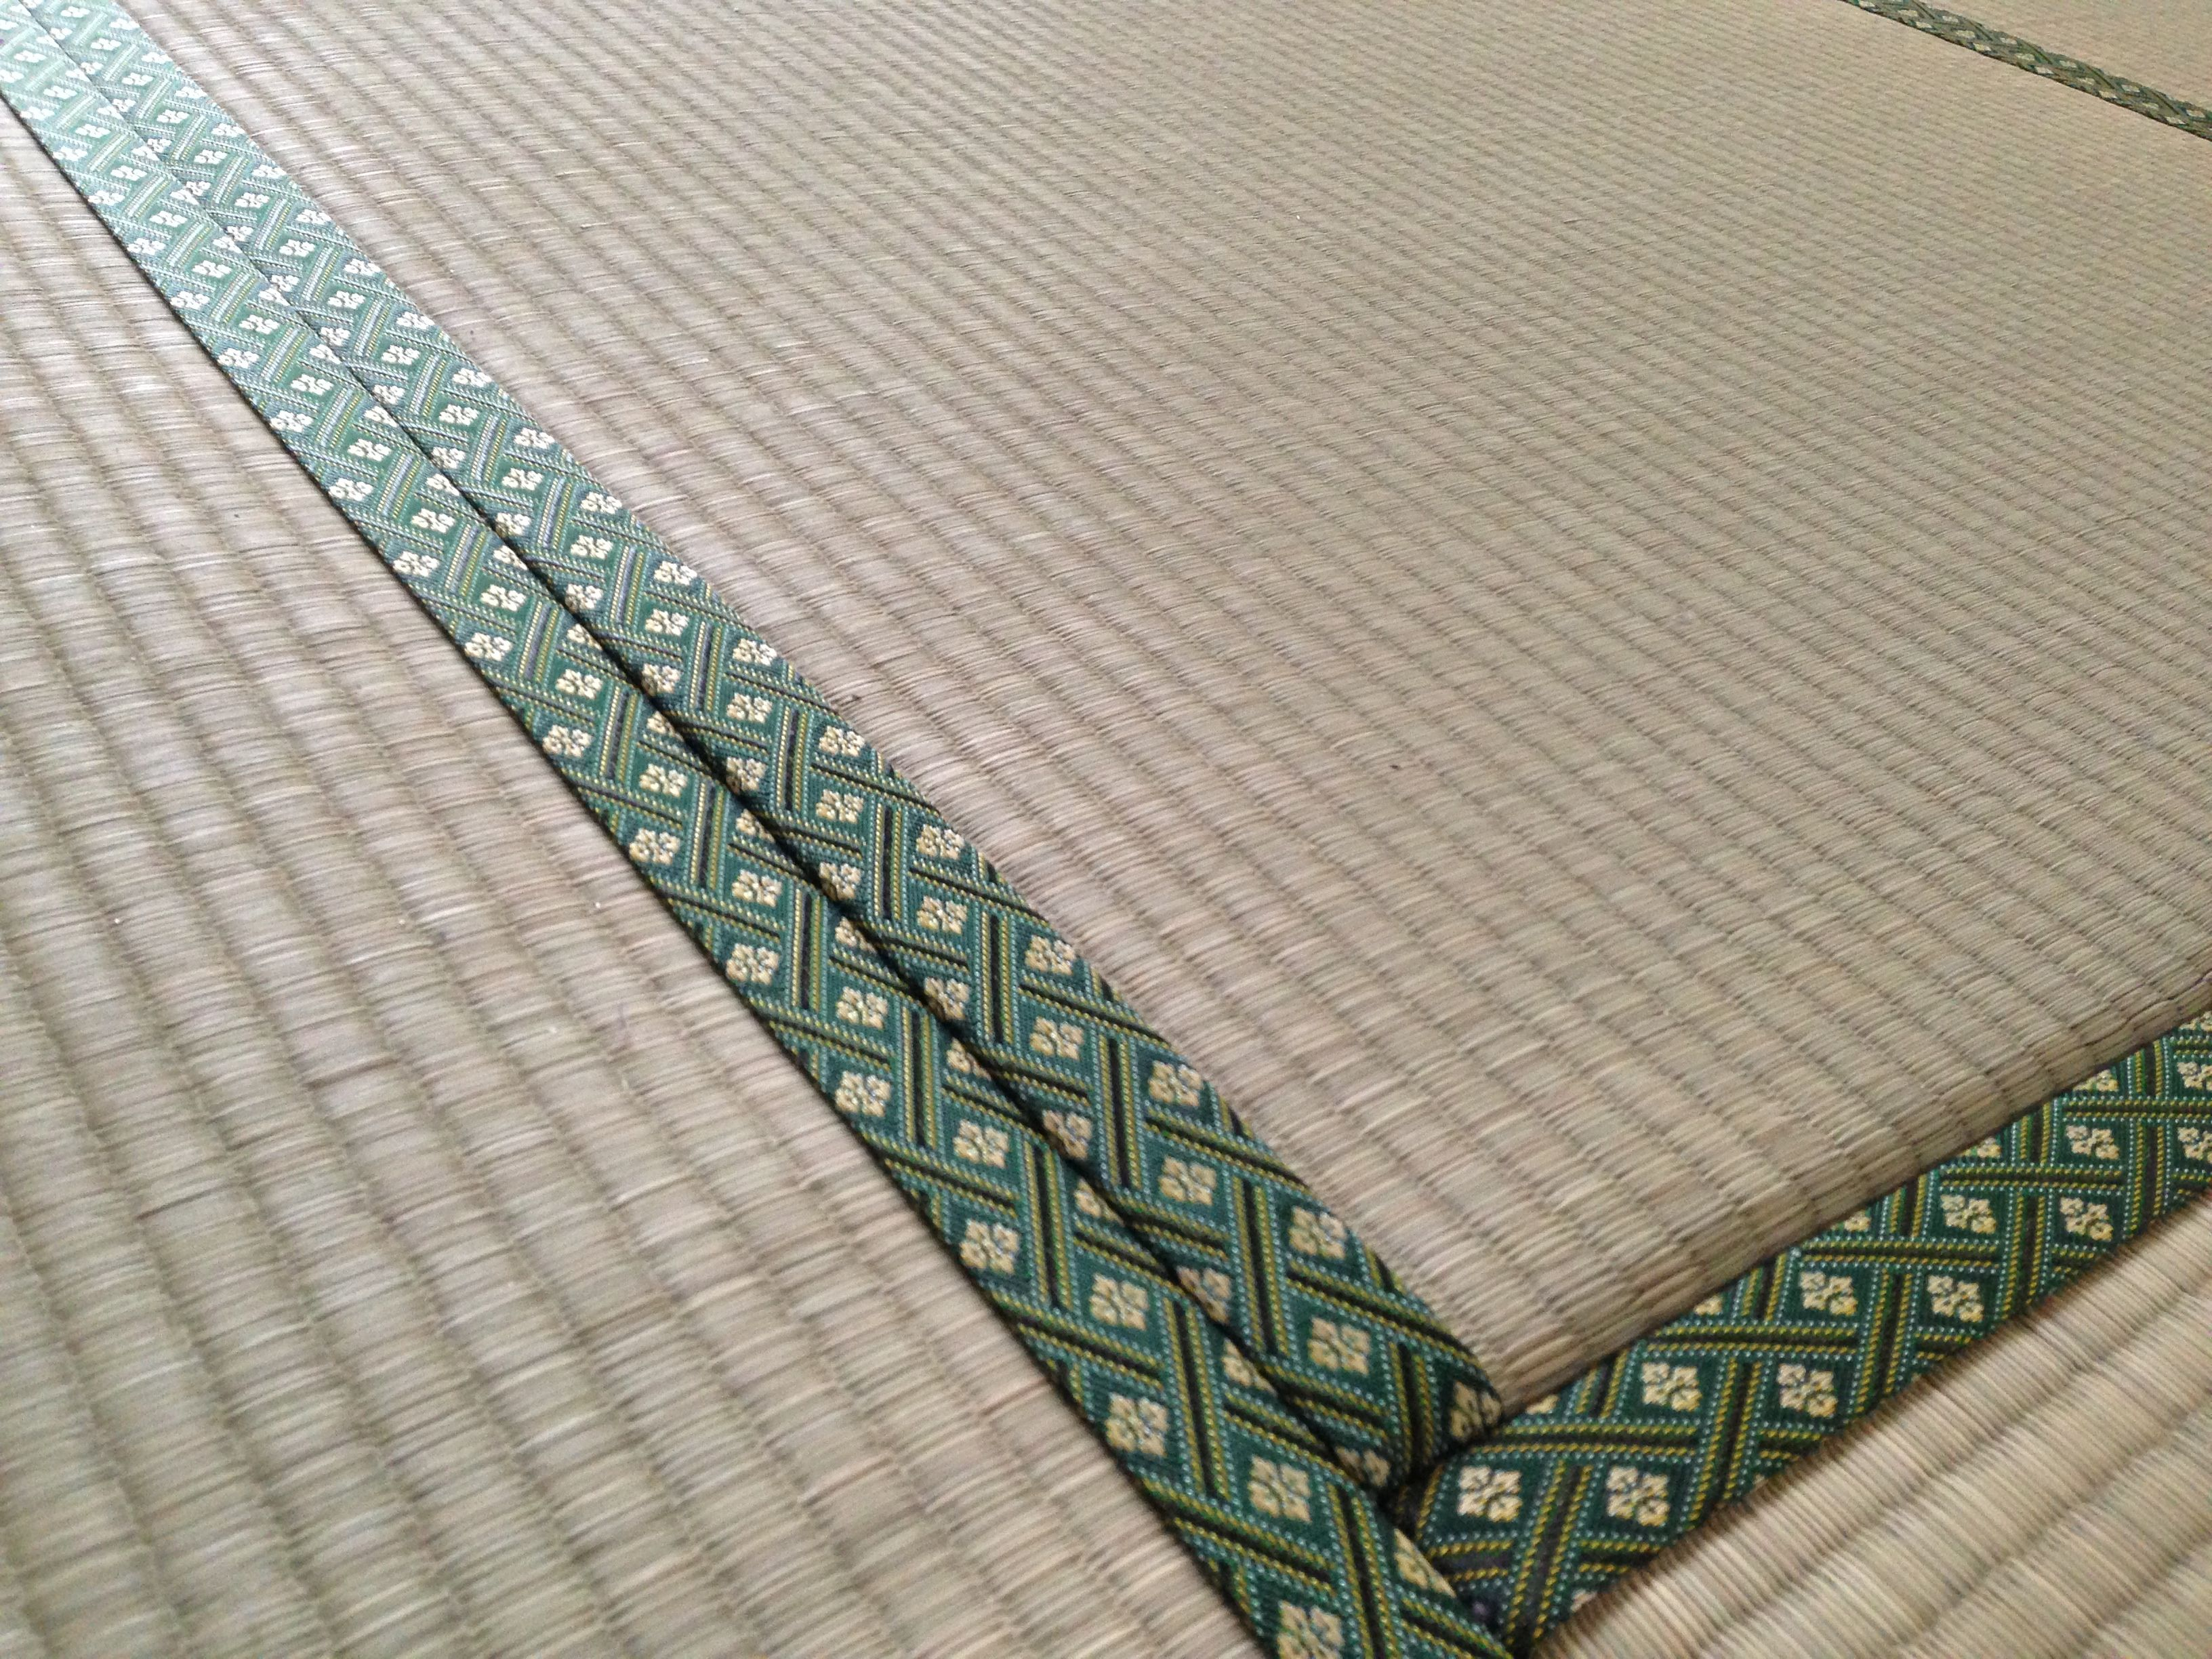 This is a close up of the tatami mats in our traditional